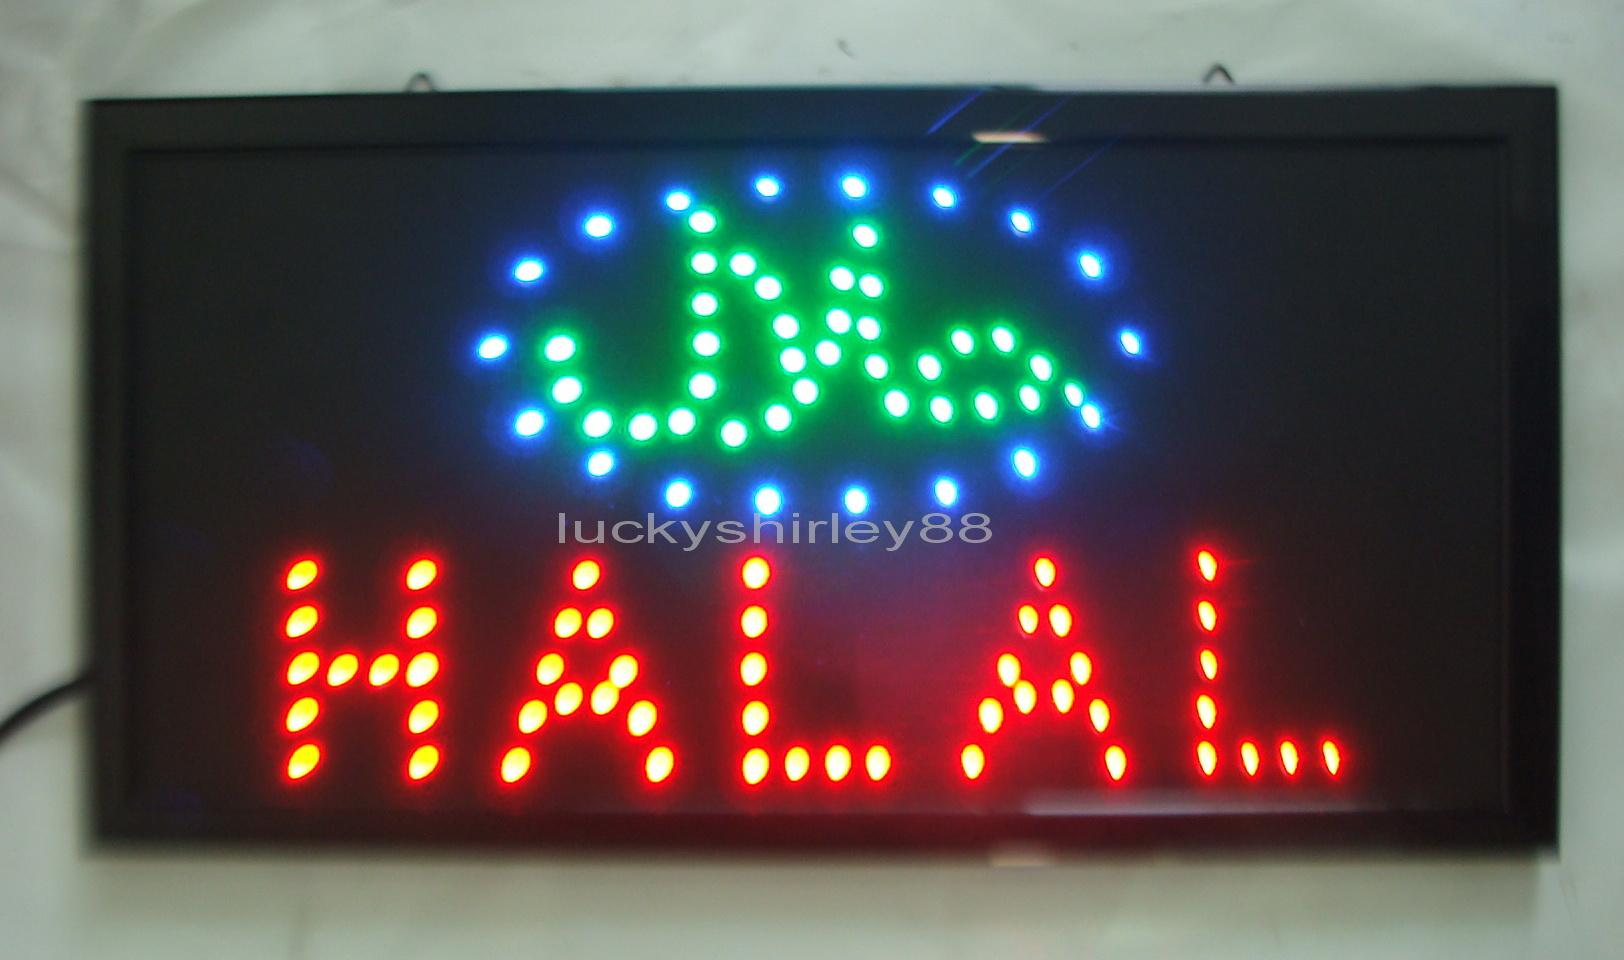 2018 new arriving customized led halal signs neon halal signs neon 2018 new arriving customized led halal signs neon halal signs neon halal sign lights semi outdoor size 48cm25cm from luckyshirley88 1629 dhgate mozeypictures Gallery